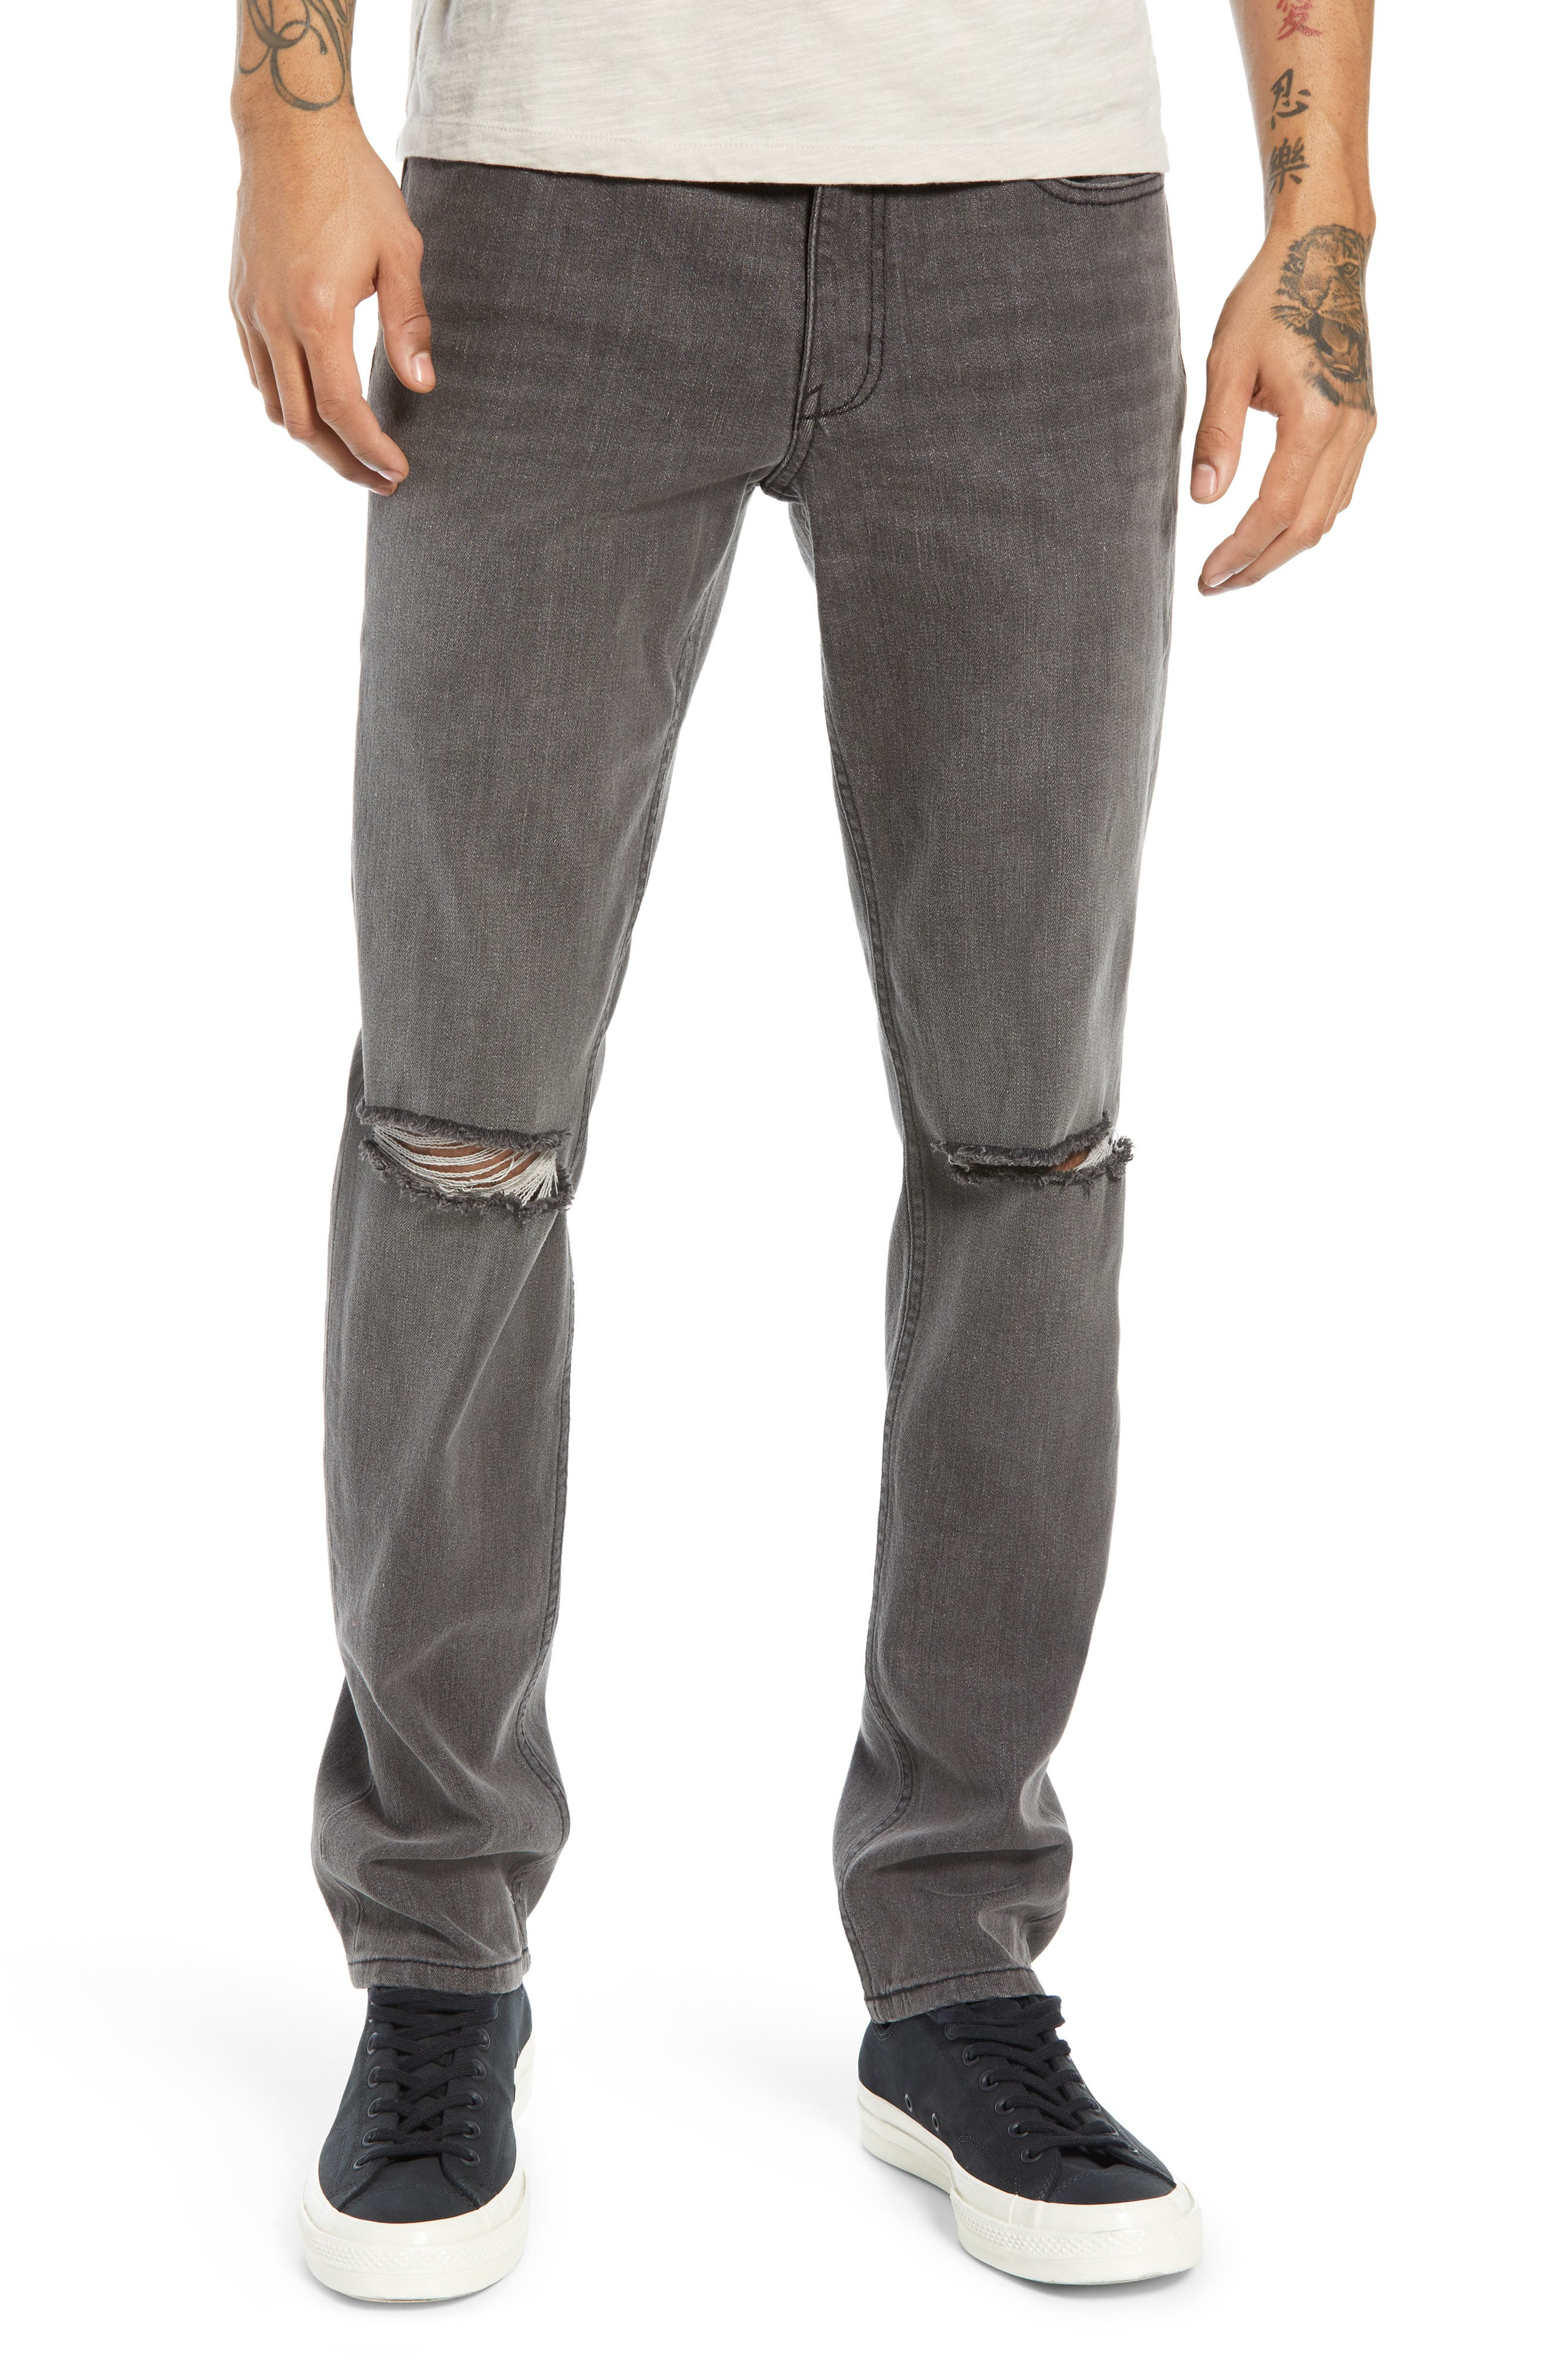 THE RAIL Ripped Skinny Jeans, Main, color, GREY CHRIS WASH